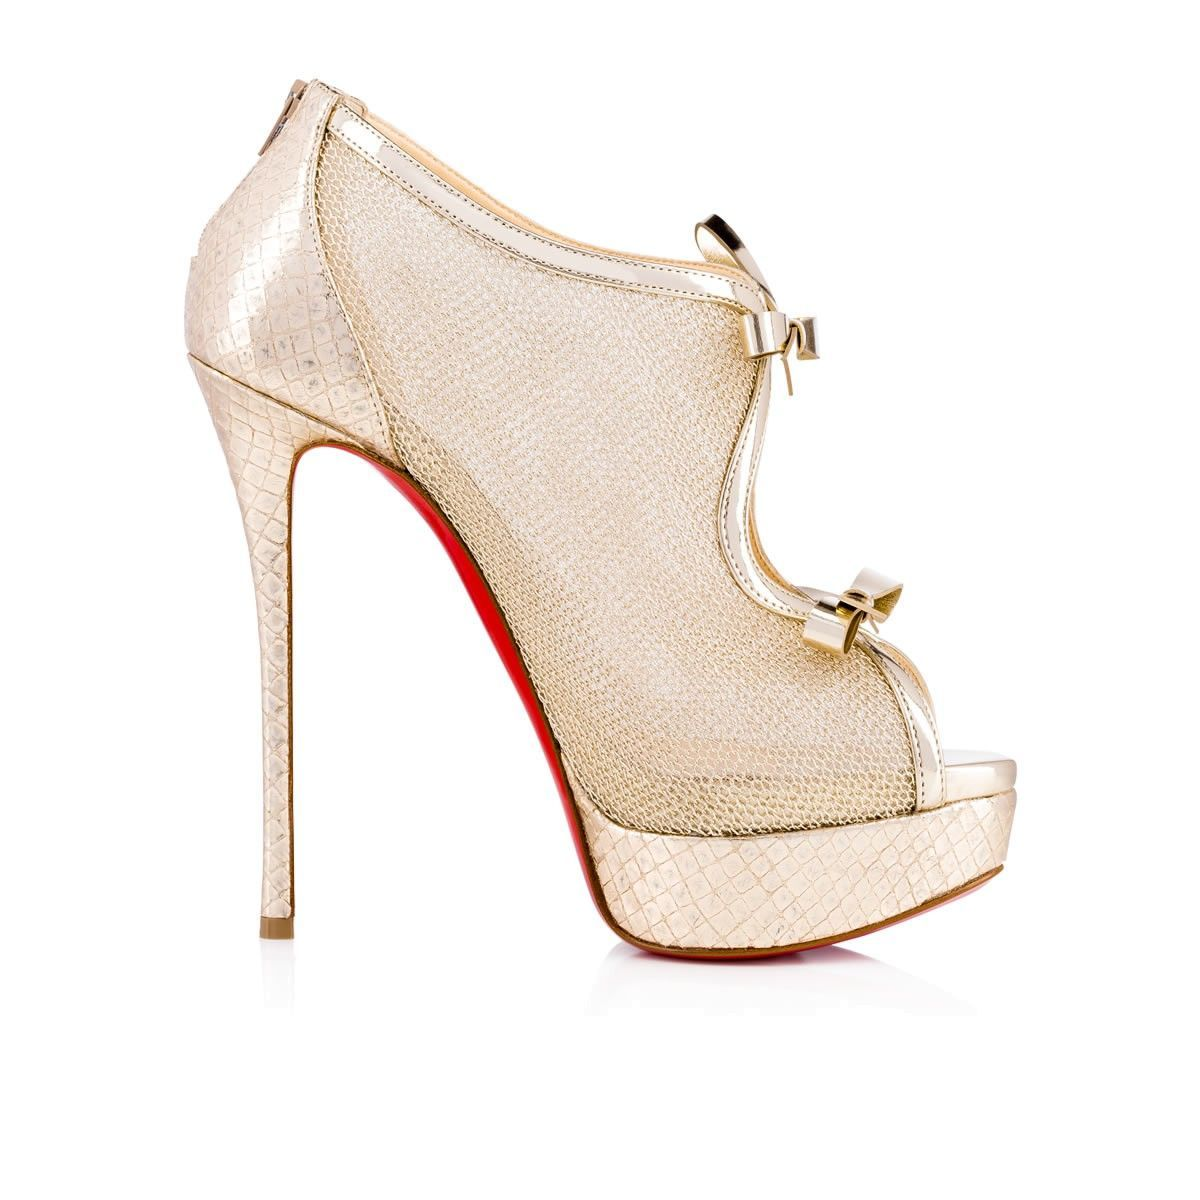 7d3158830ce9 Shoes - Empiraltissima - Christian Louboutin